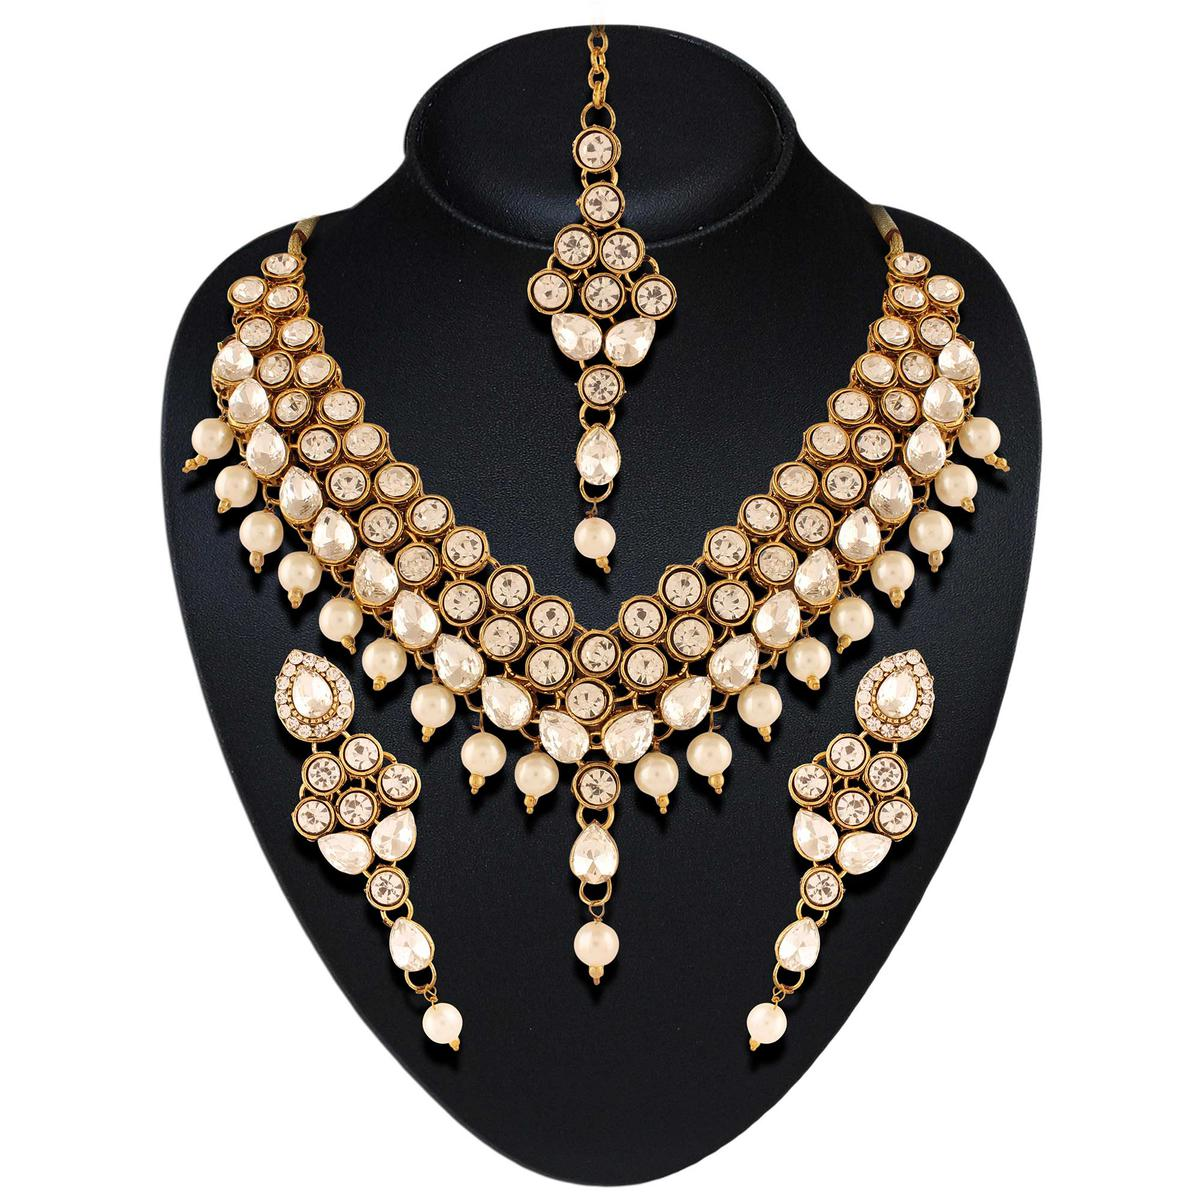 Endearing Necklace Set